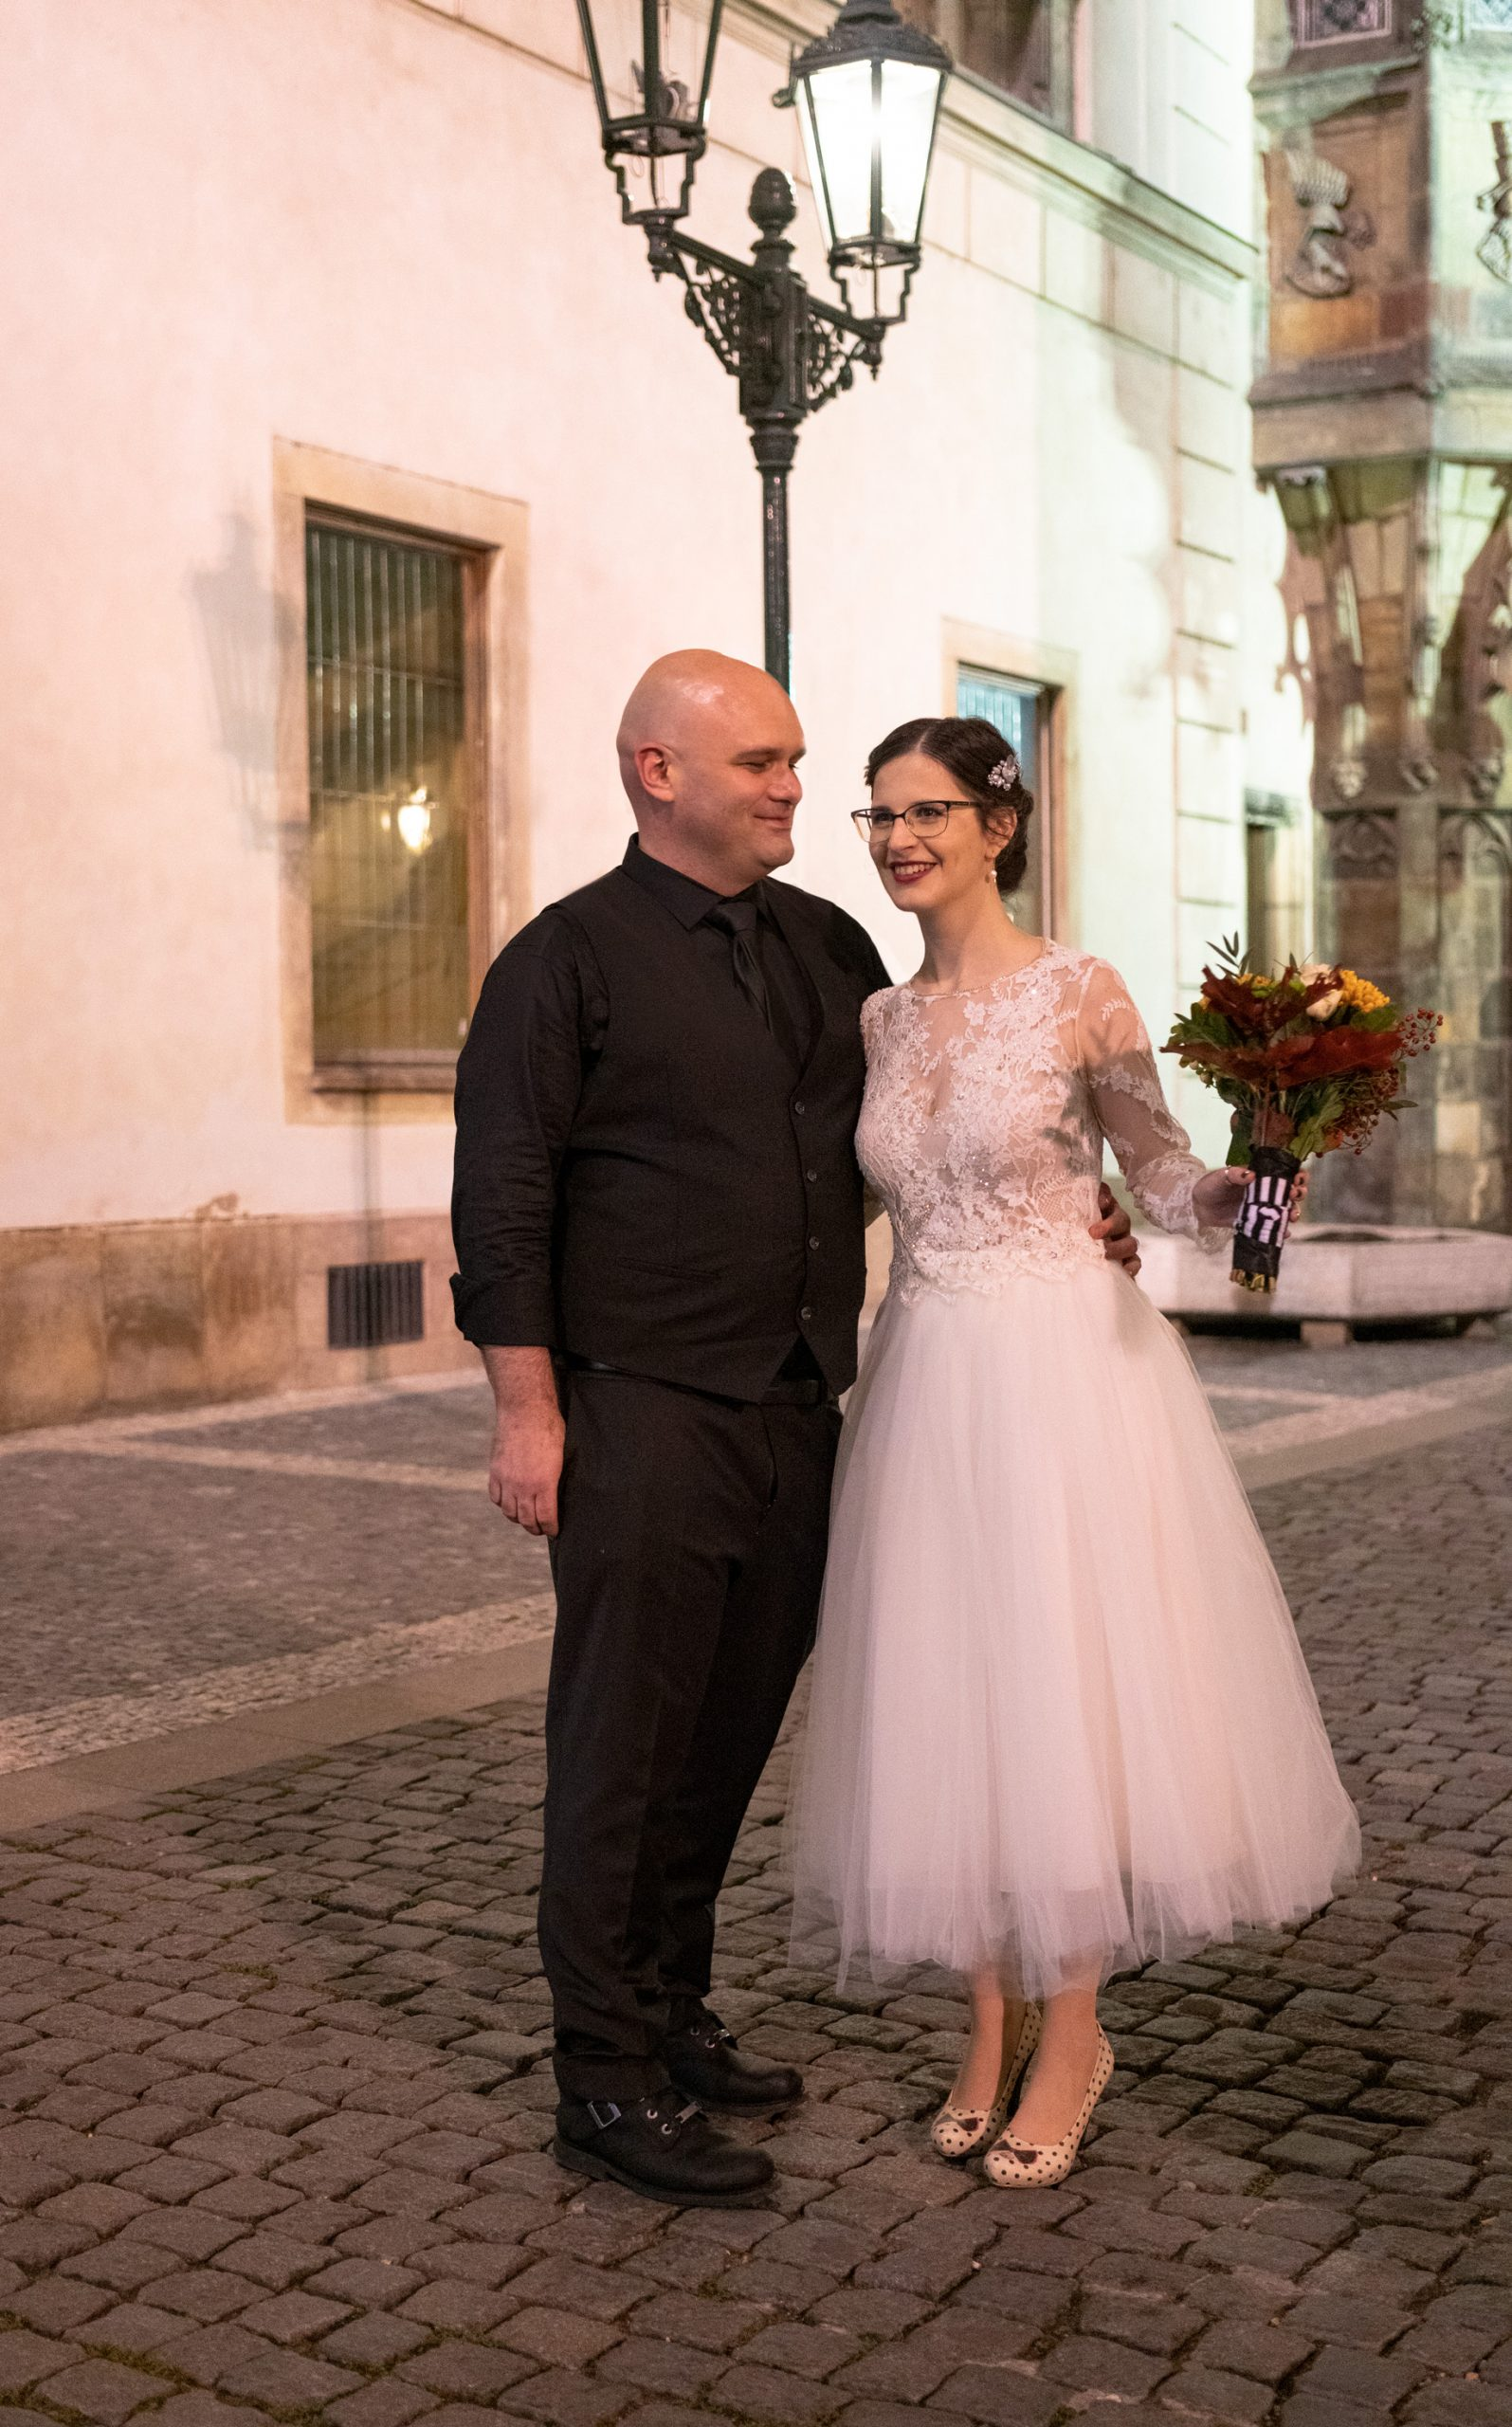 Bride with a Tulle dress by Hila Gaon and groom with a black suit